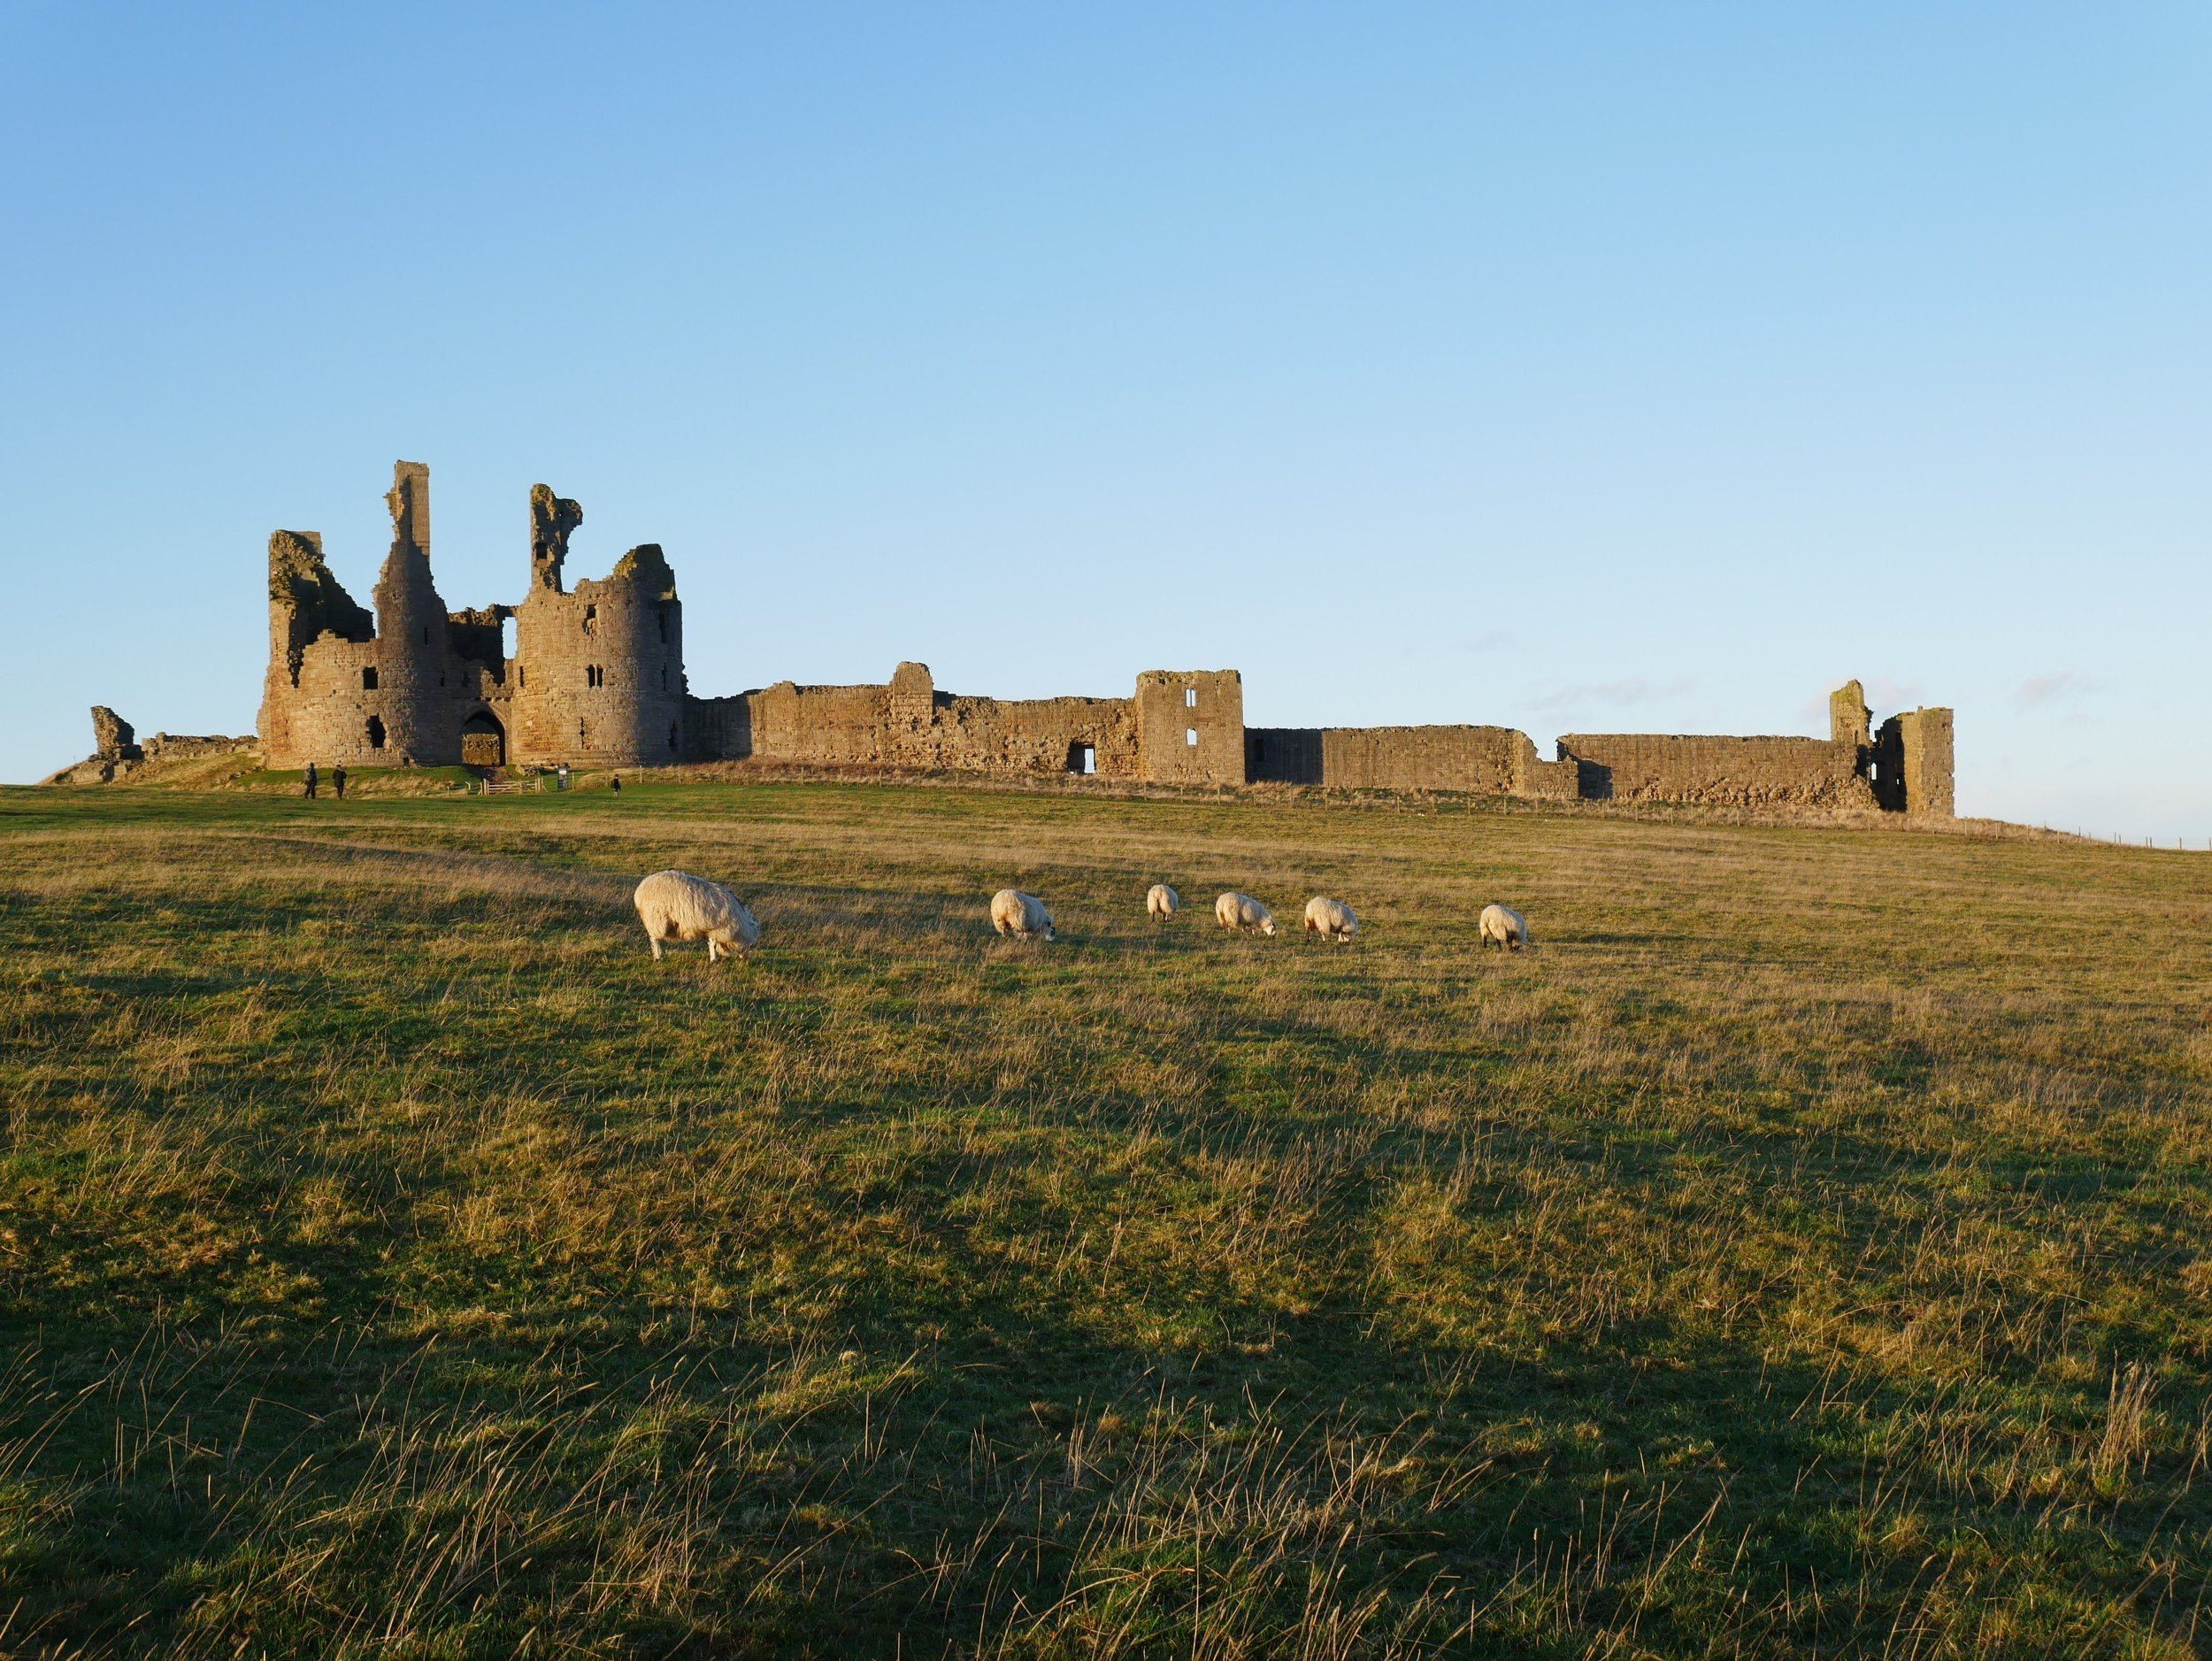 Dunstanburgh Castle (7 Miles) - Built on the most magnificent scale, Dunstanburgh Castle stands on a remote headland in Northumberland. The focus of fierce fighting during the Wars of the Roses, it was twice besieged and captured by Yorkist forces, but subsequently fell into decay. Later being taken on by English Heritage, perfect for panoramic views of Northumberland.